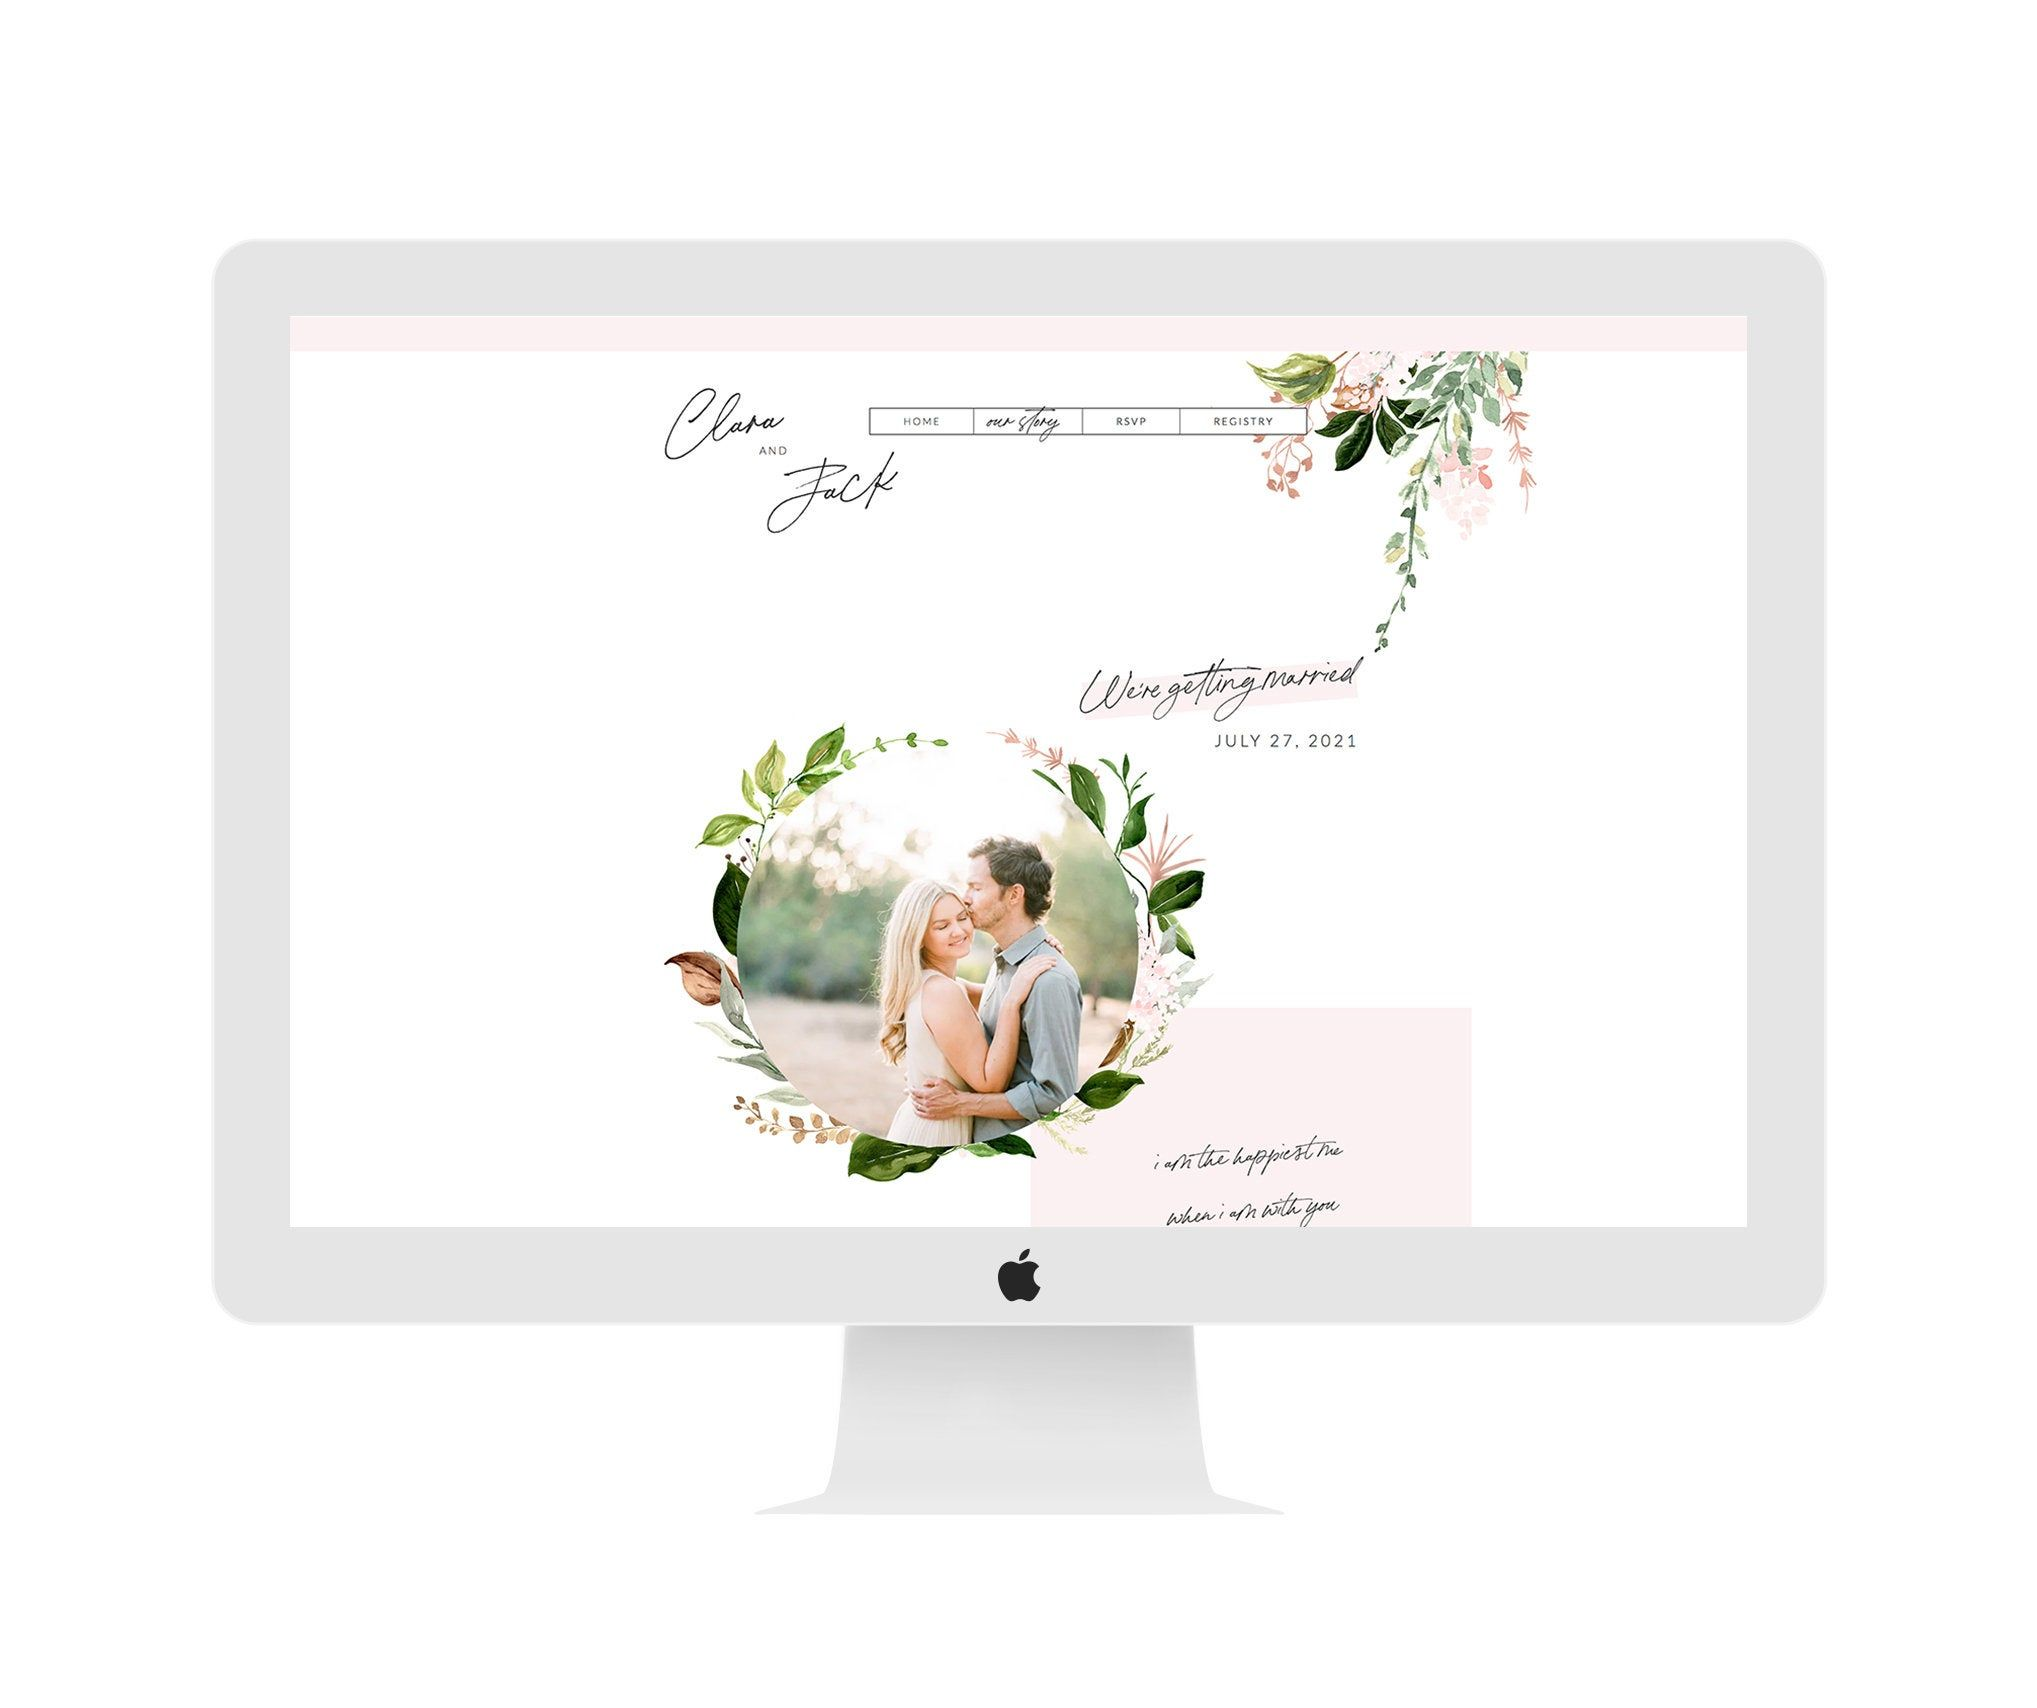 Wix Wedding Website, Wedding RSVP Invitation Website, Wix